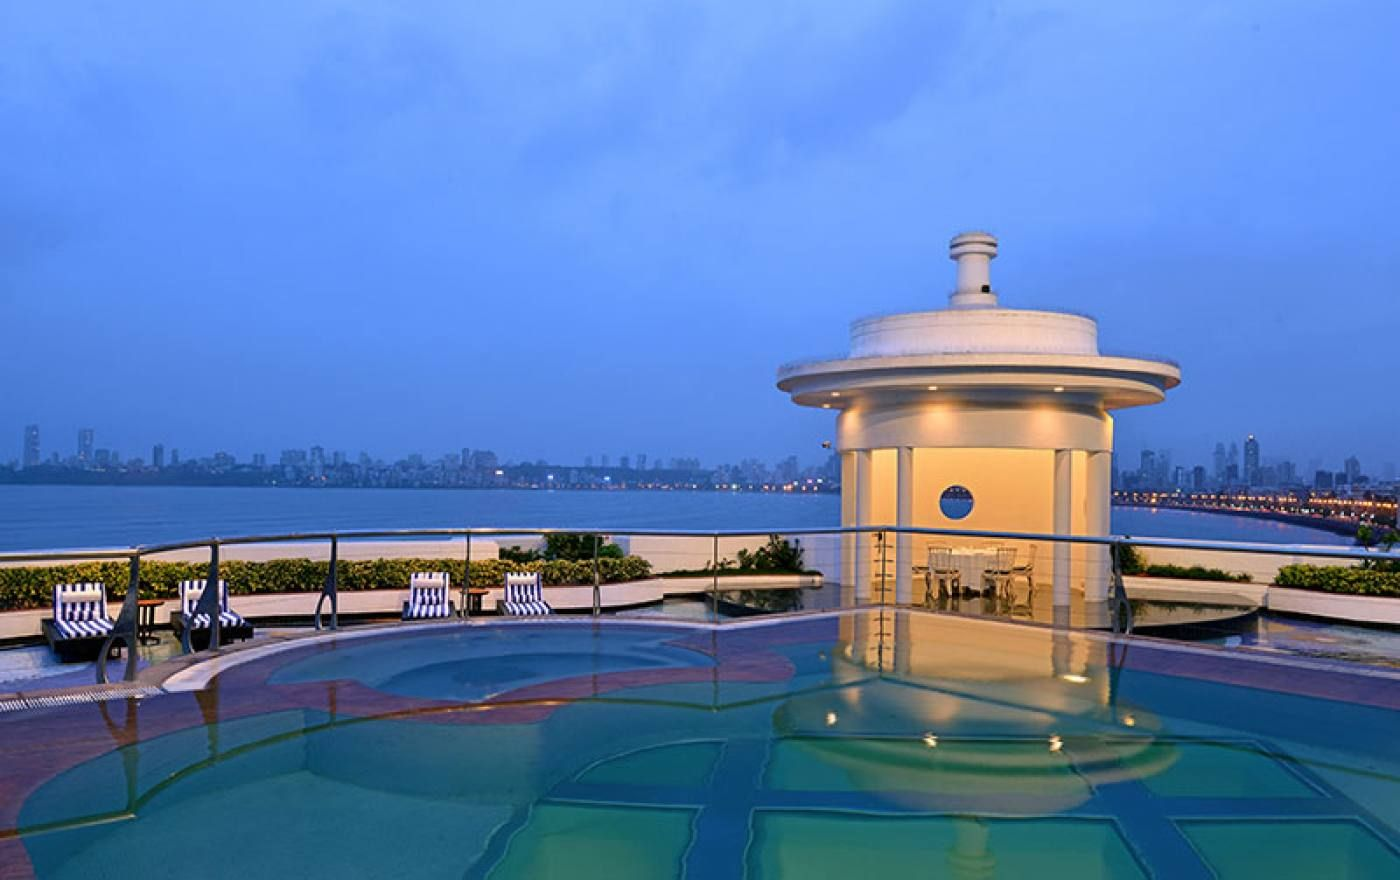 Gallery - Hotel Marine Plaza | Five star hotels in Mumbai | Nariman point hotels | Banquets in South Mumbai | Hotels near Colaba | Marine drive hotels | Banquets near marine drive | Business center in South Mumbai